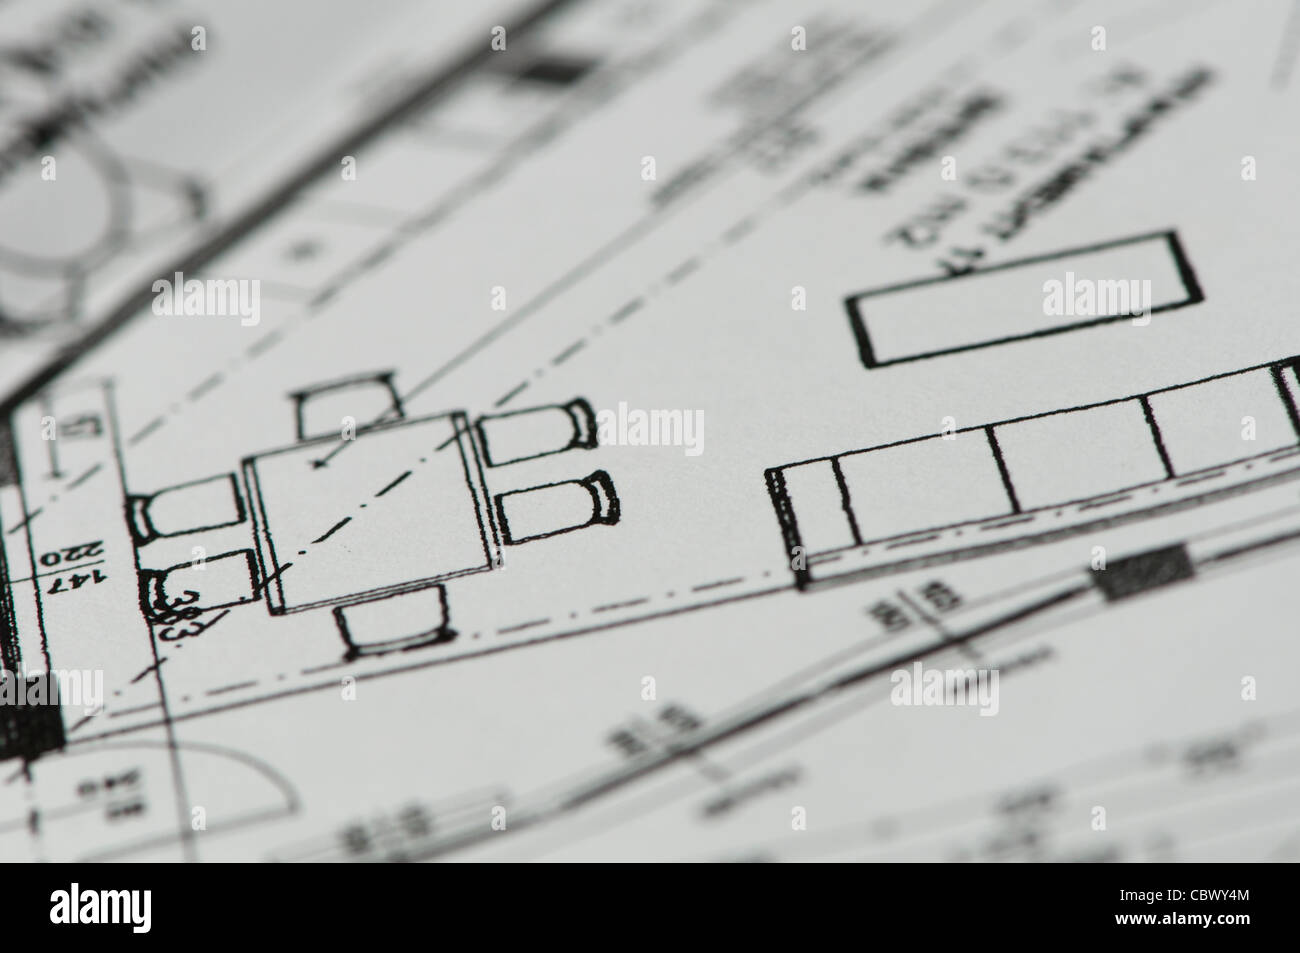 House Sketch Vector Stockfotos & House Sketch Vector Bilder - Alamy